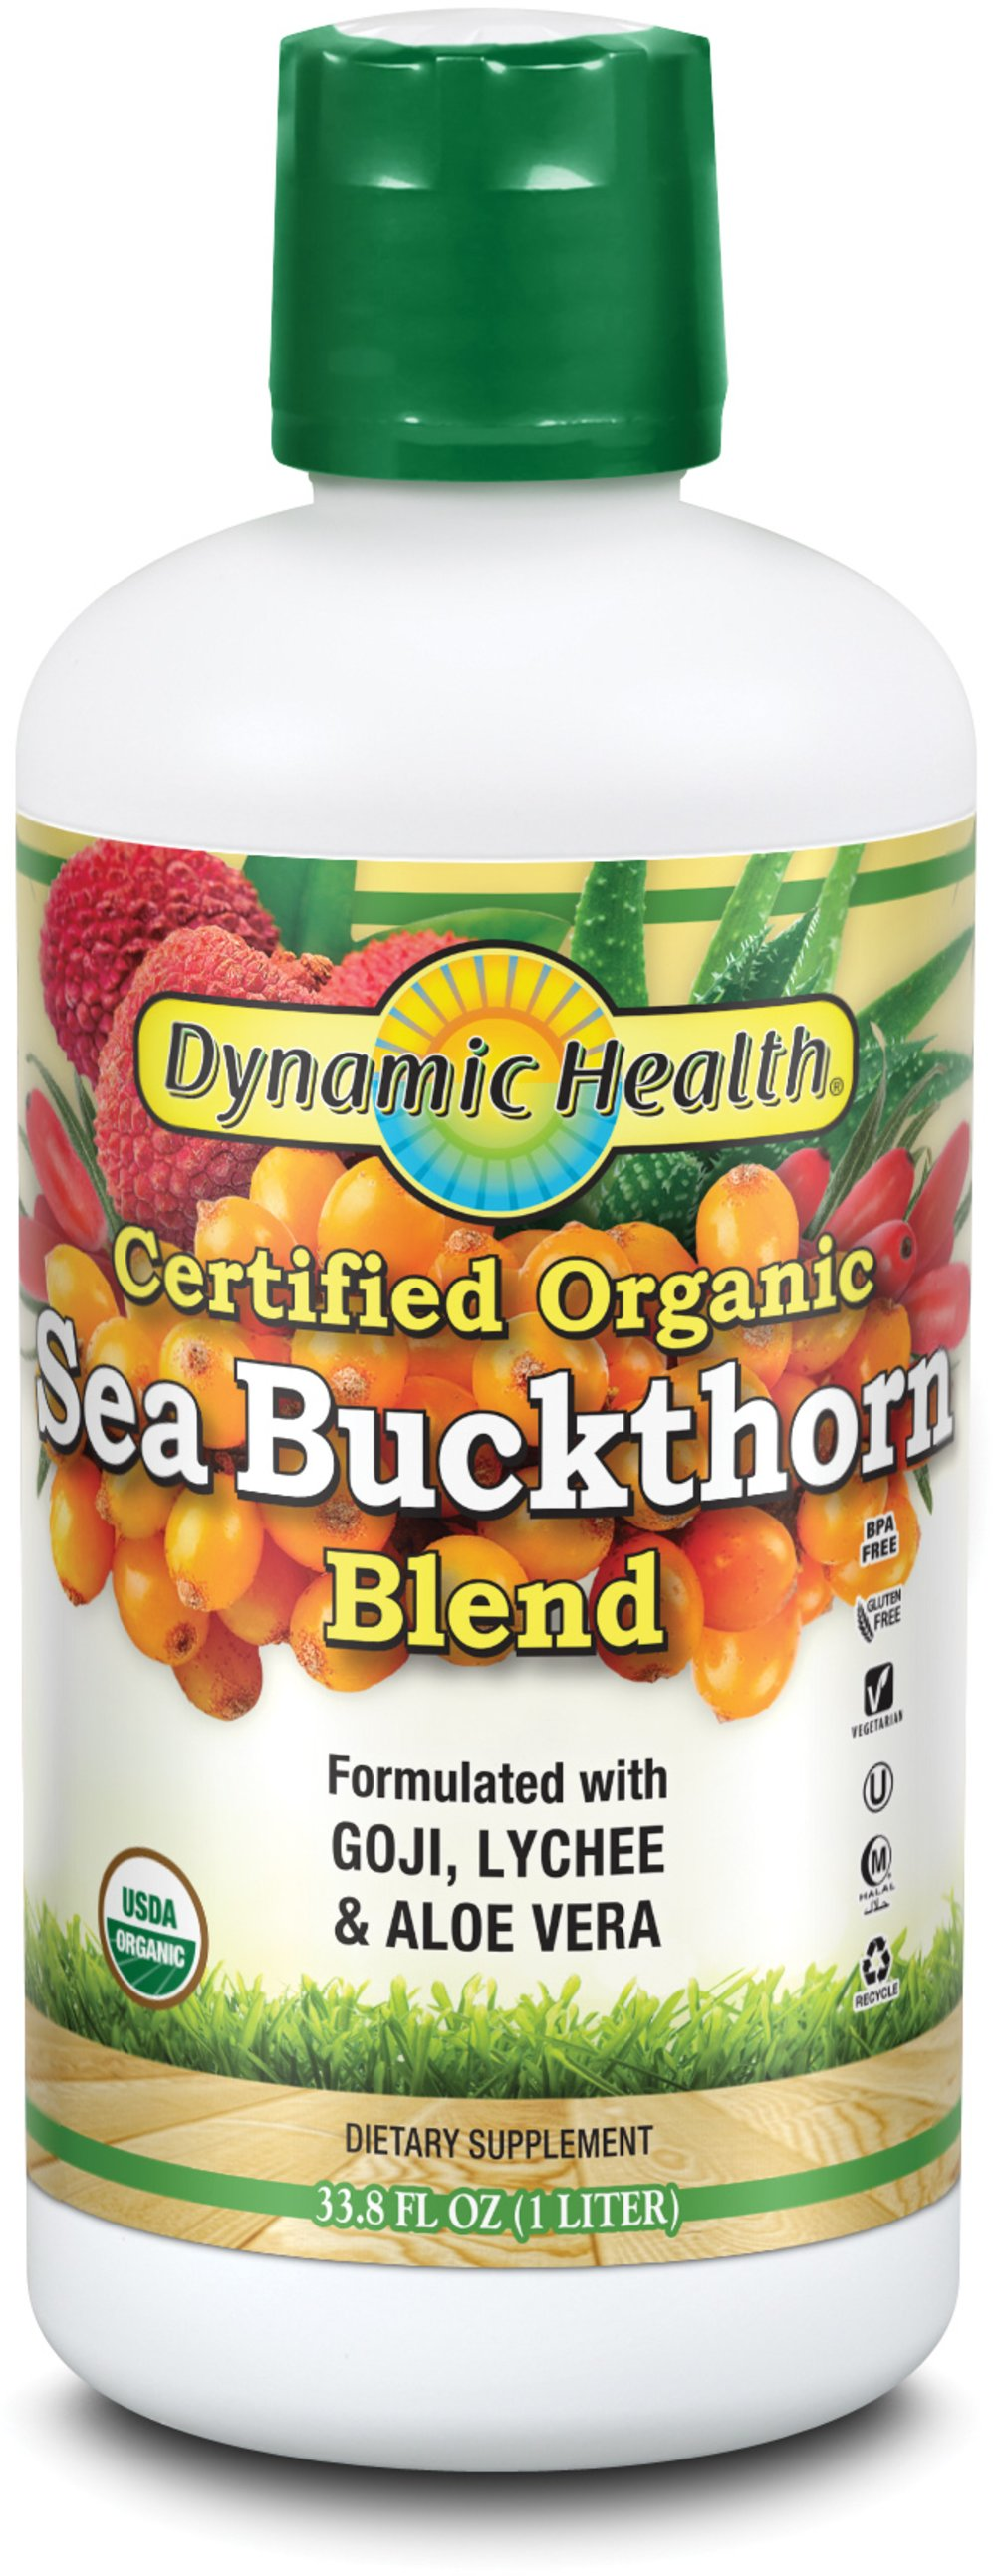 Organic Sea Buckthorn Juice <p><strong>From the Manufacturer:</strong></p><p>Organic Certified Seabuckthorn fortified with Goji, Lychee+ Aloe Vera. The Seabuckthorn Berry is used traditionally to help promote healthy living. Rich in minerals, vitamins, amino acids, and bioflavonoids.<br /></p><p>Manufactured by Dynamic Health Laboratories, Inc.</p> 33.8 fl oz. Liquid  $16.99